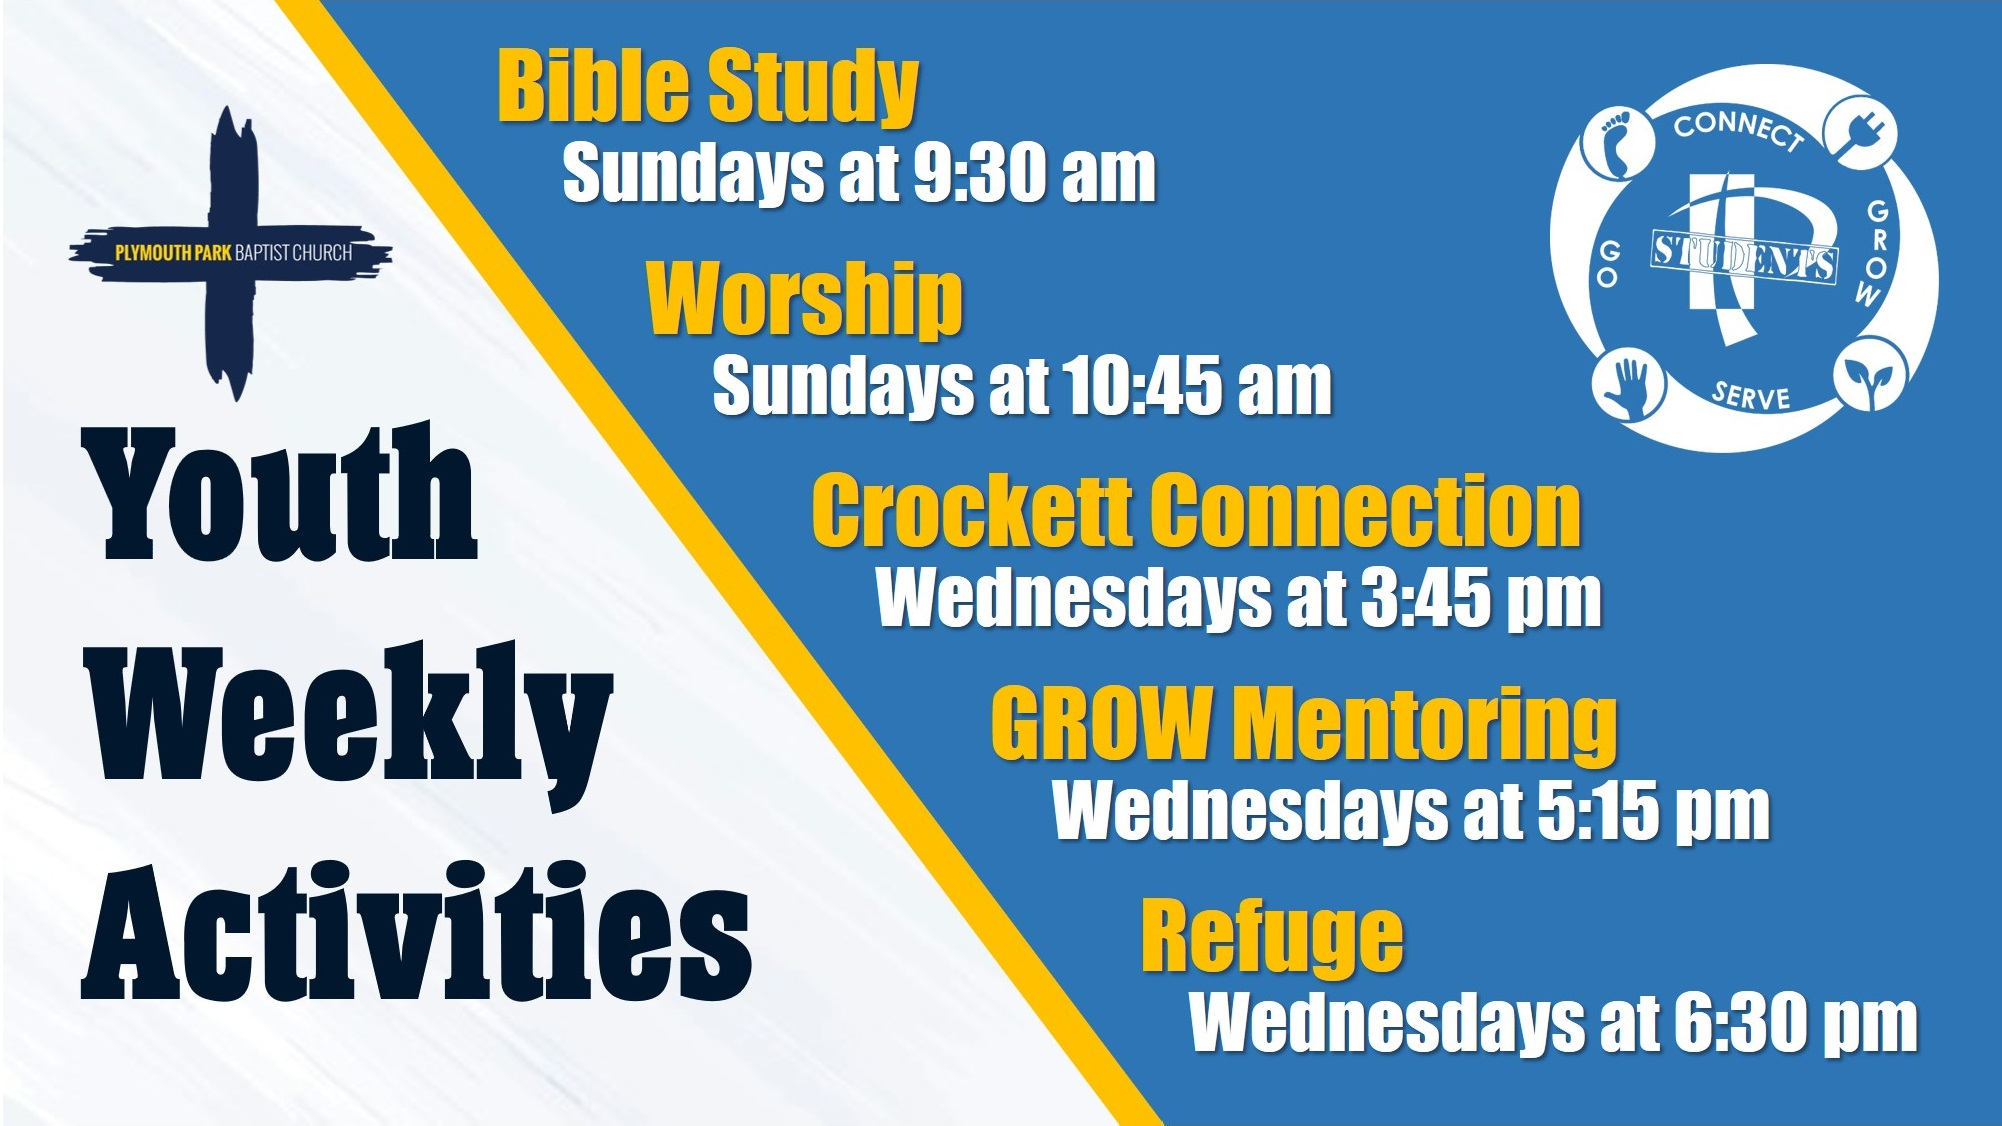 Youth Weekly Activities NEW